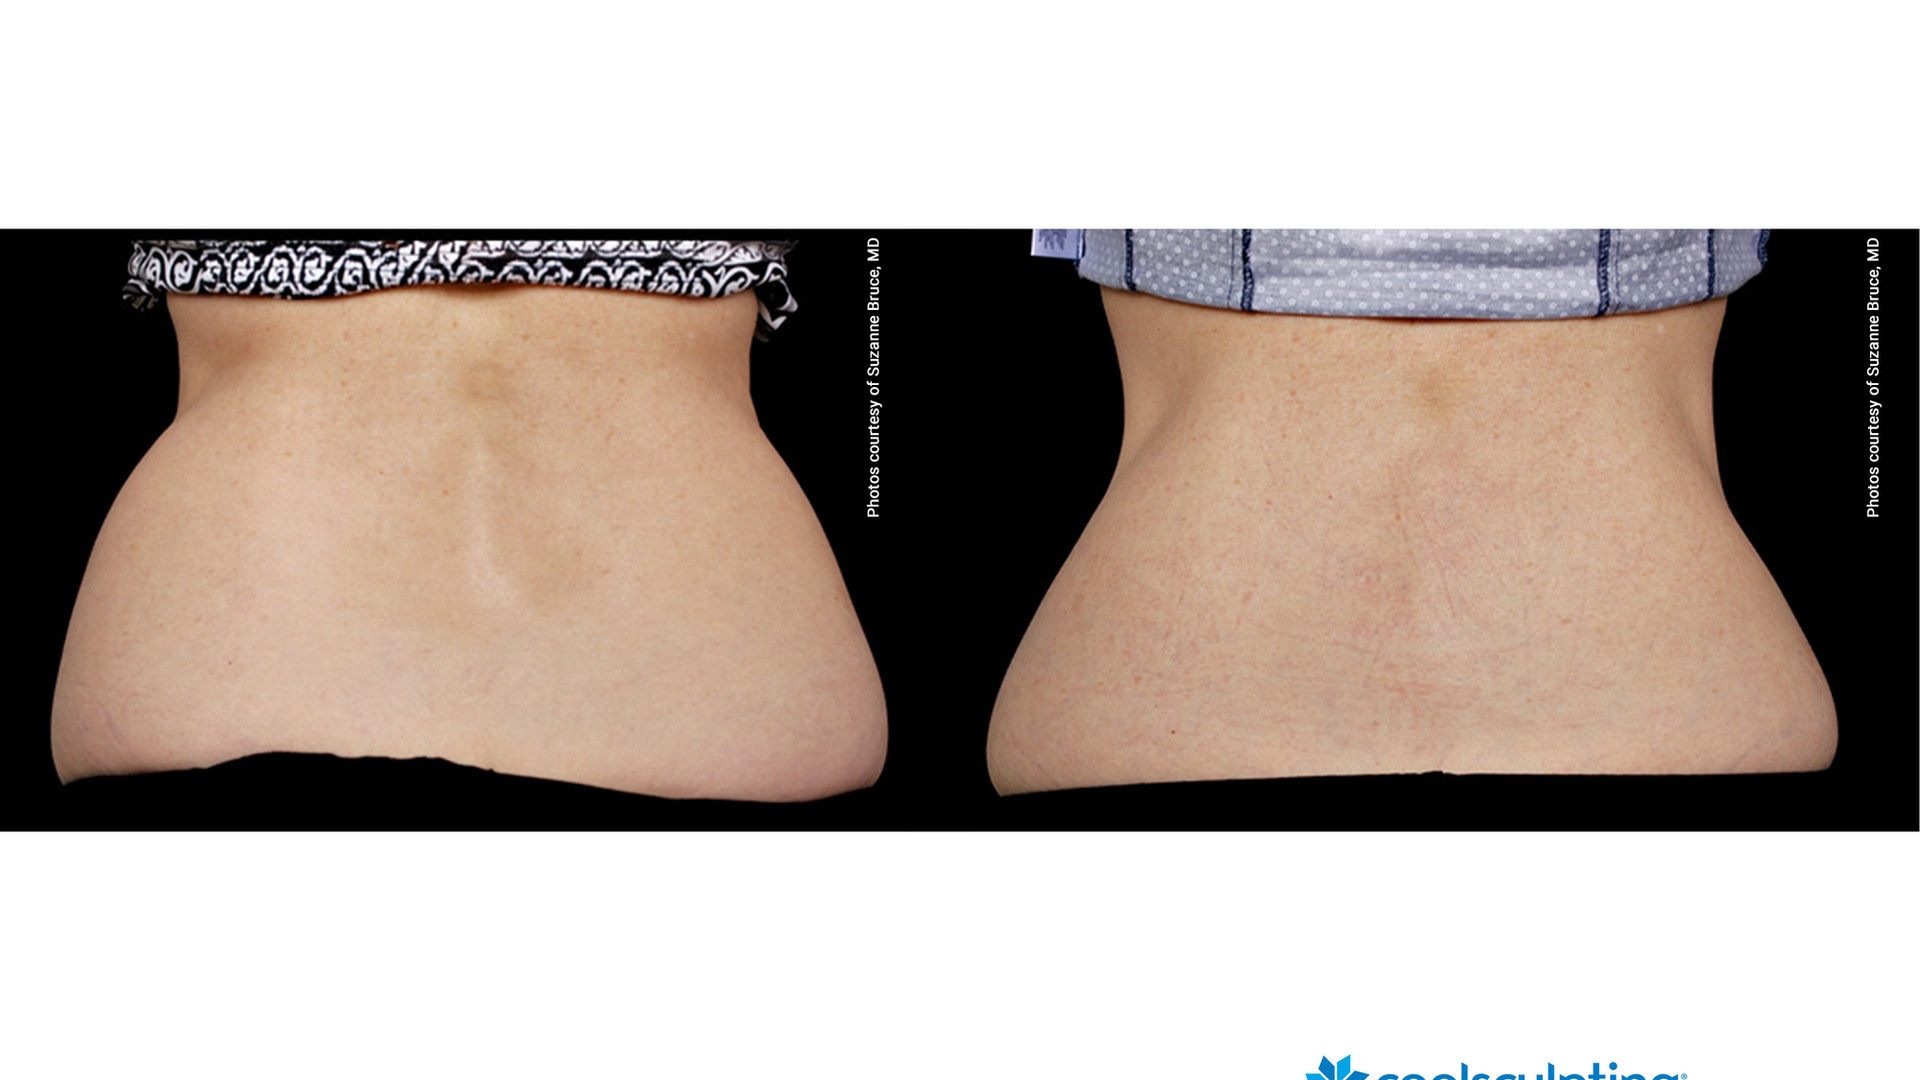 Coolsculpting before and after 3.jpg